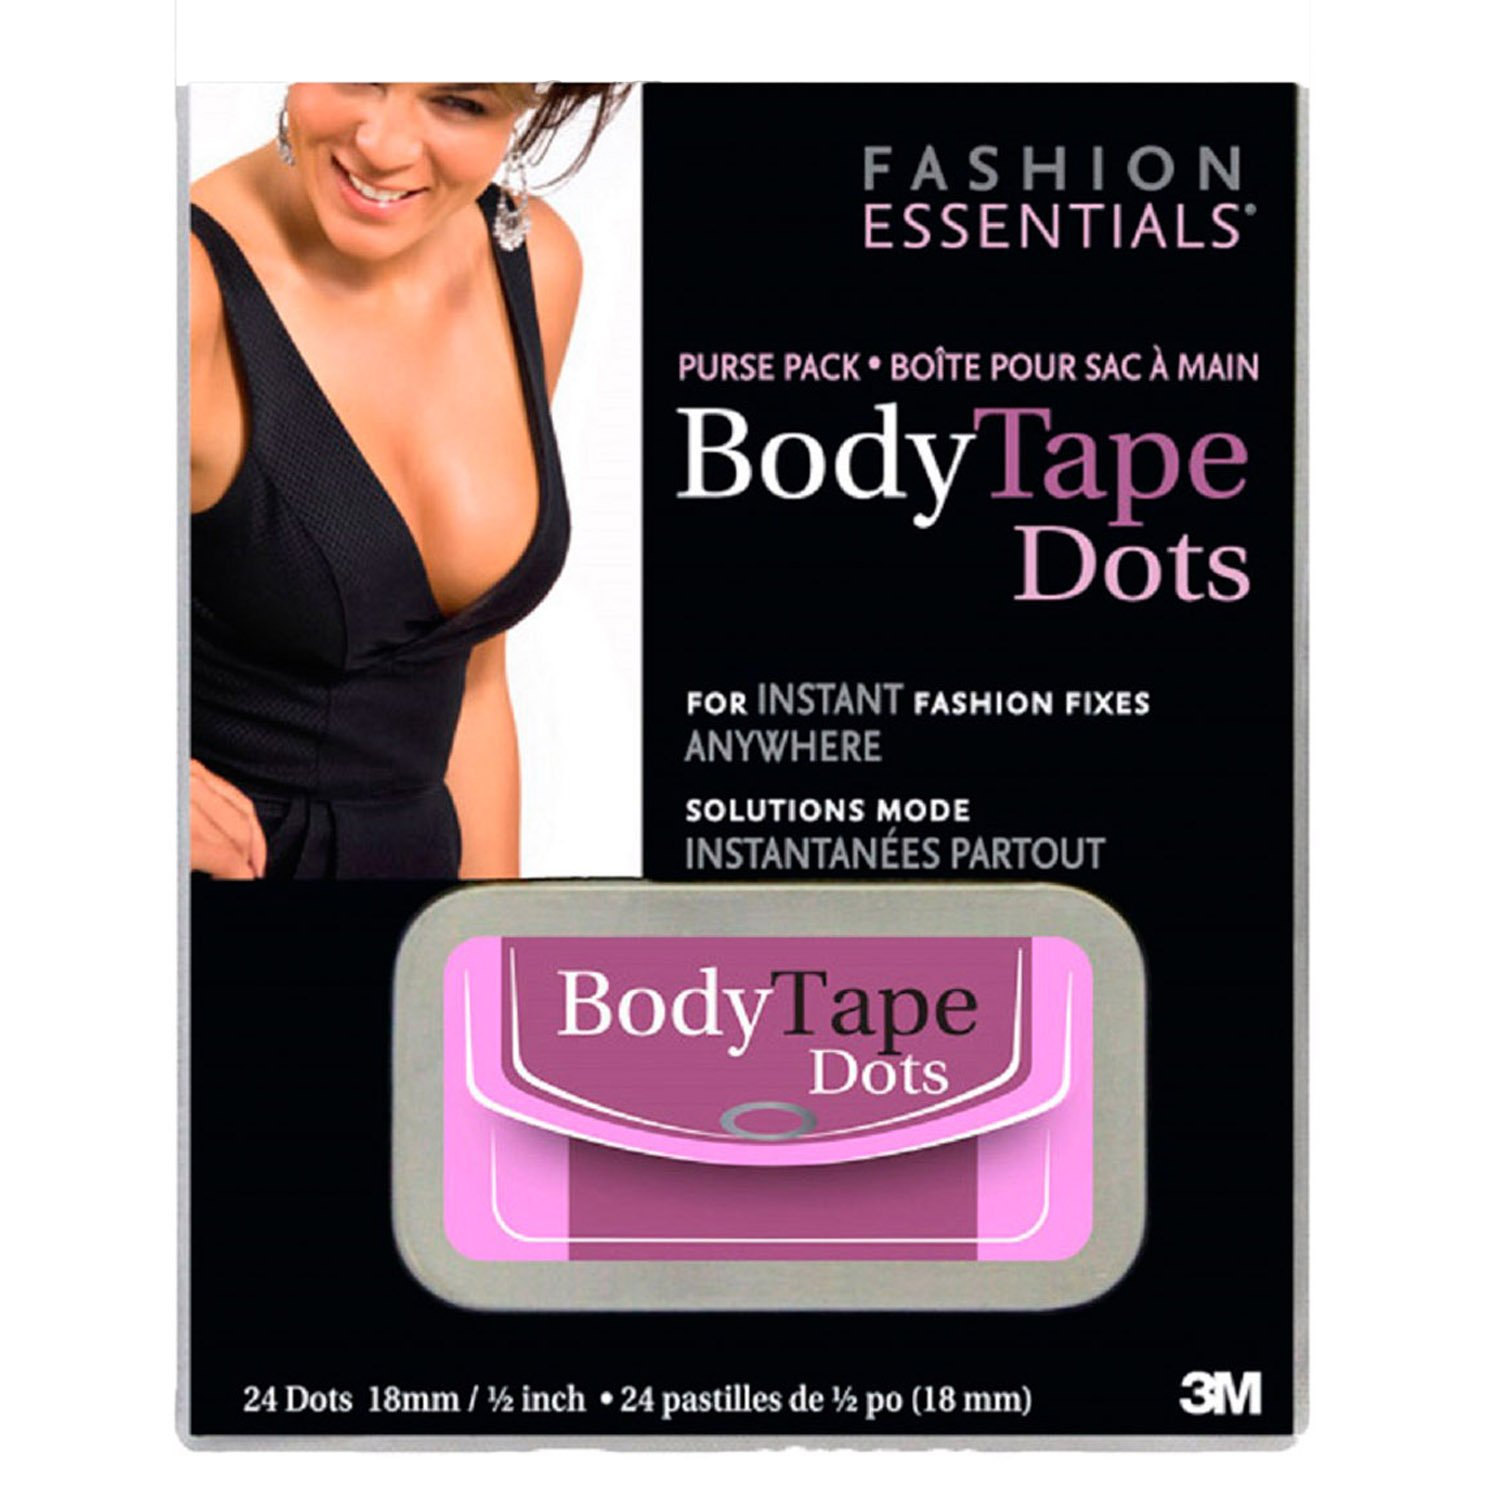 Fashion Essentials Womens Purse Pack Body Tape Dots-24 Dots